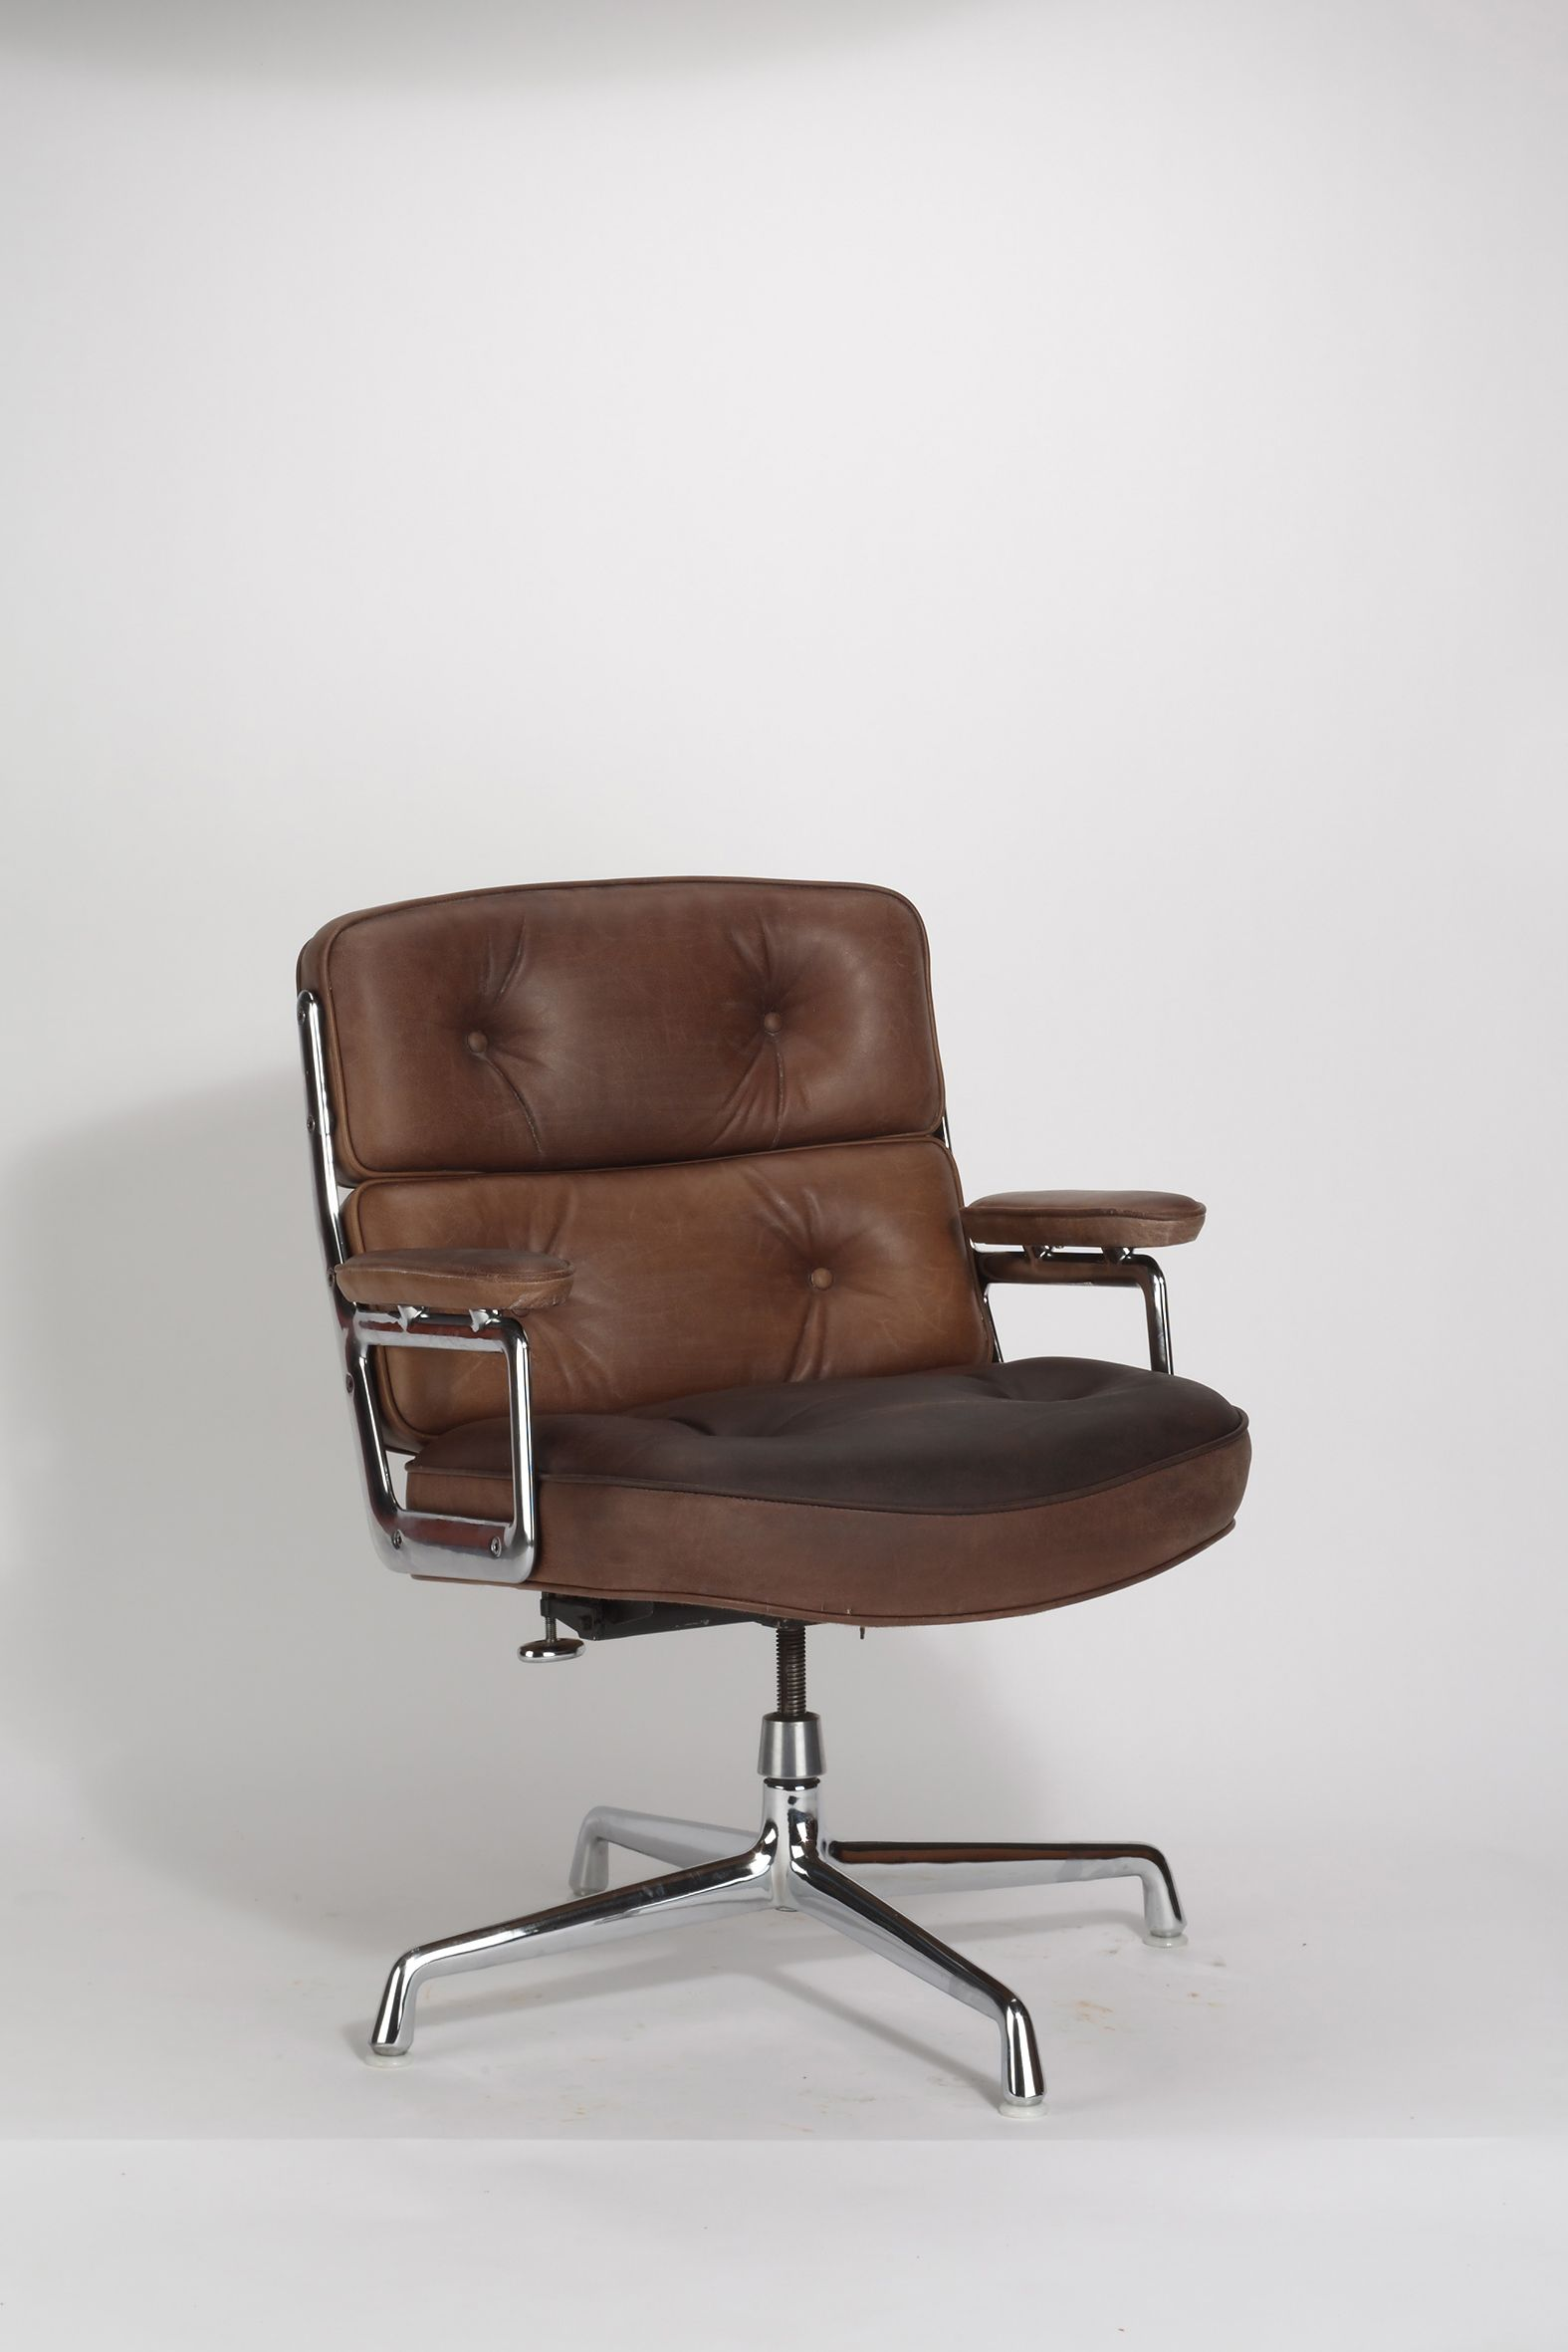 Charles & Ray Eames, TimeLife Stuhl (1960